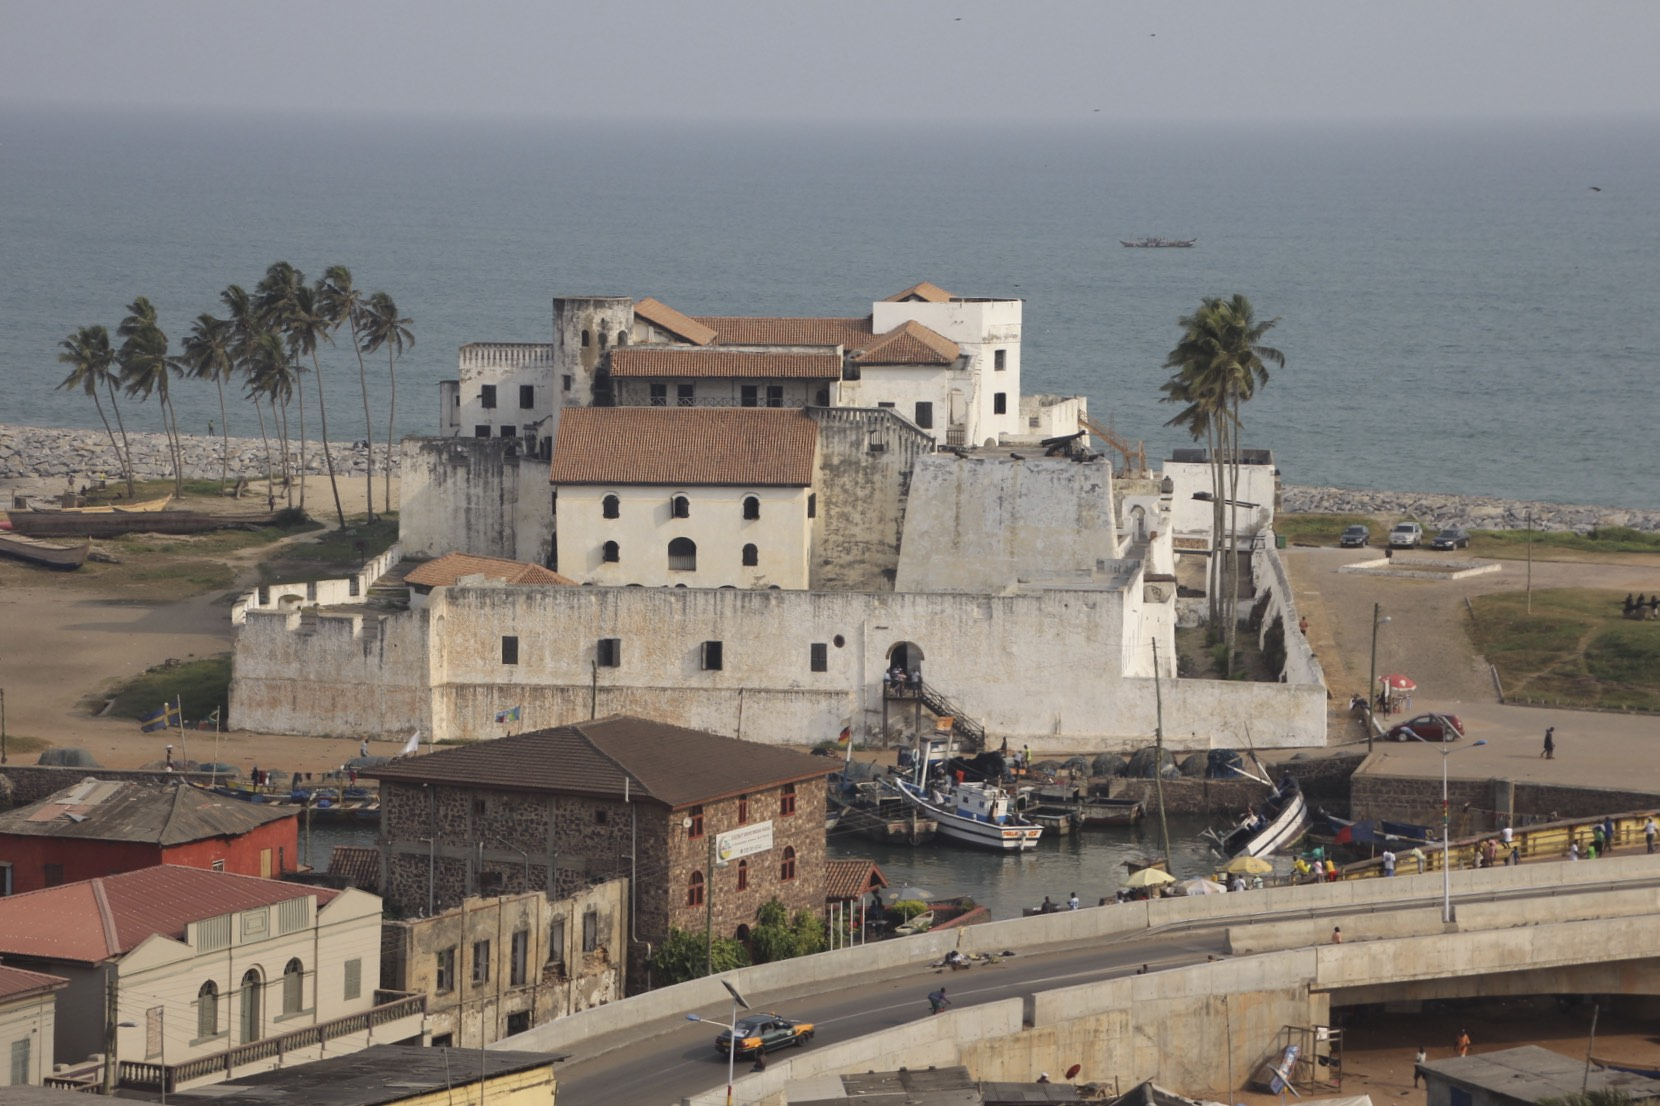 The view of Elmina Fort from the St. James Castle in Elmina